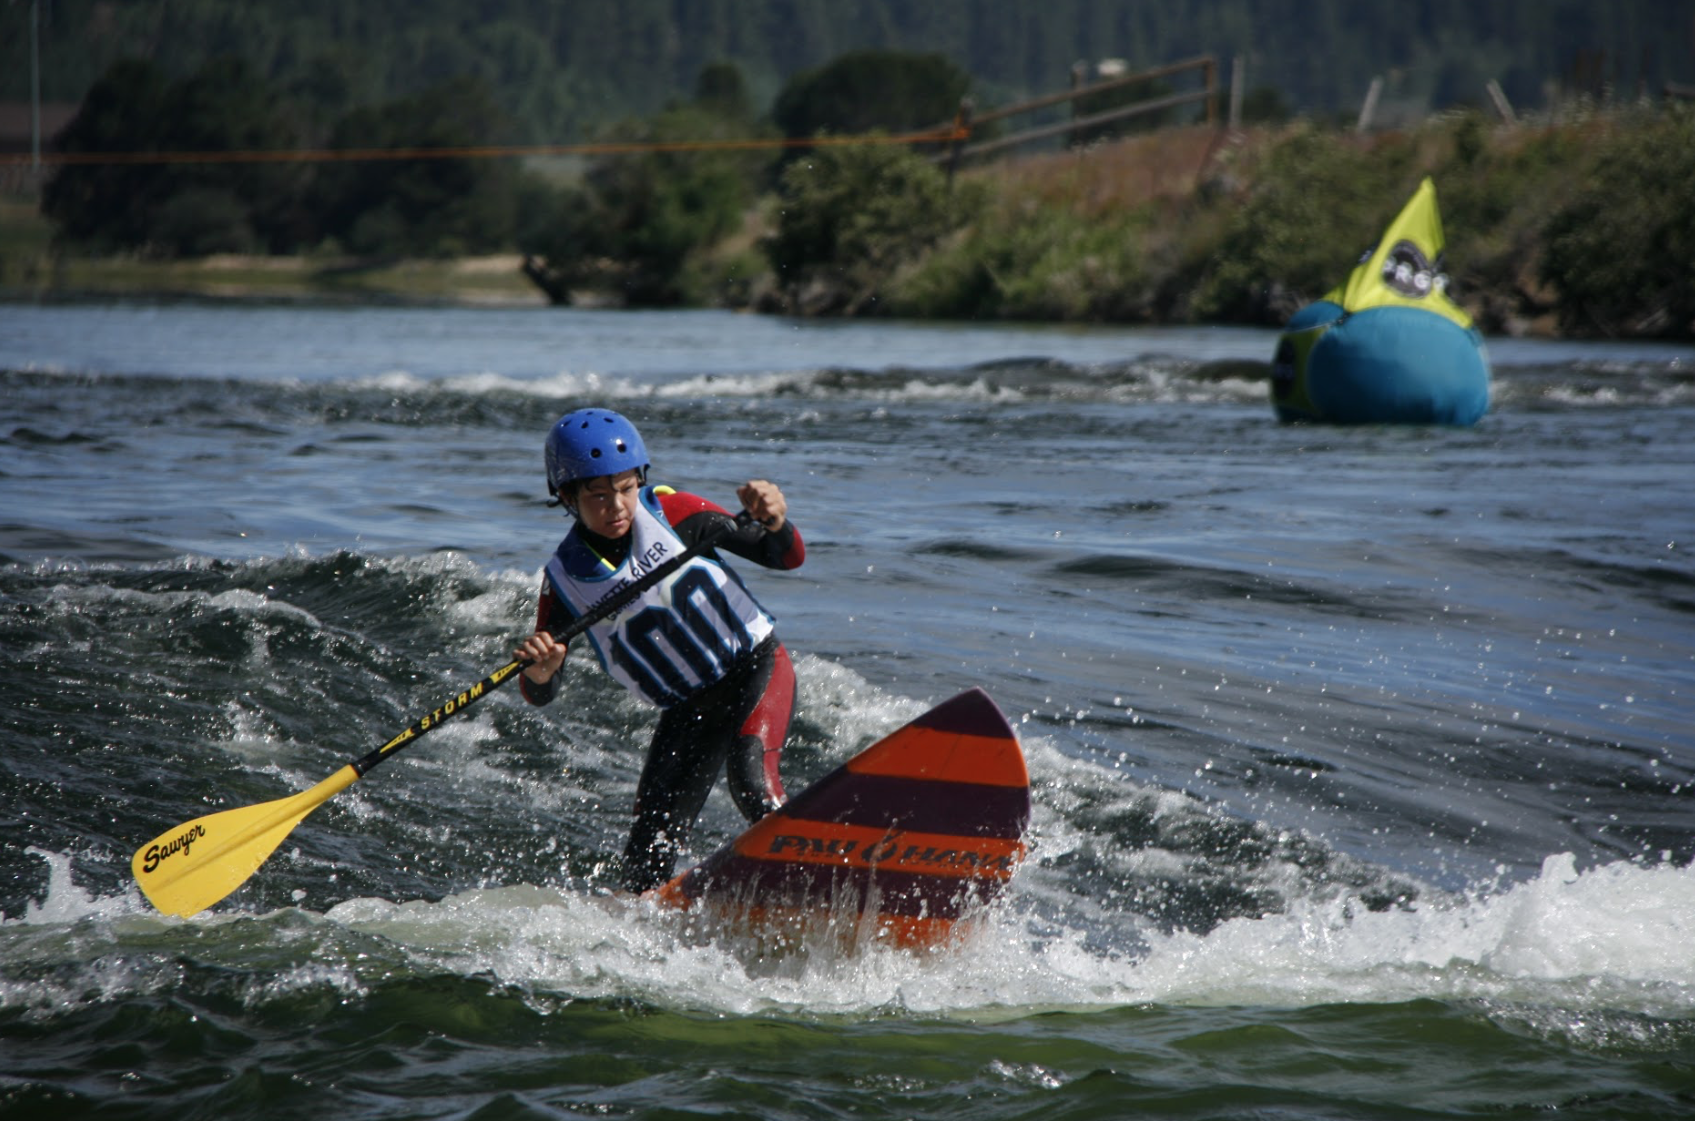 Kid paddling the sup carve surfboard by Pau Hana surf supply on the river